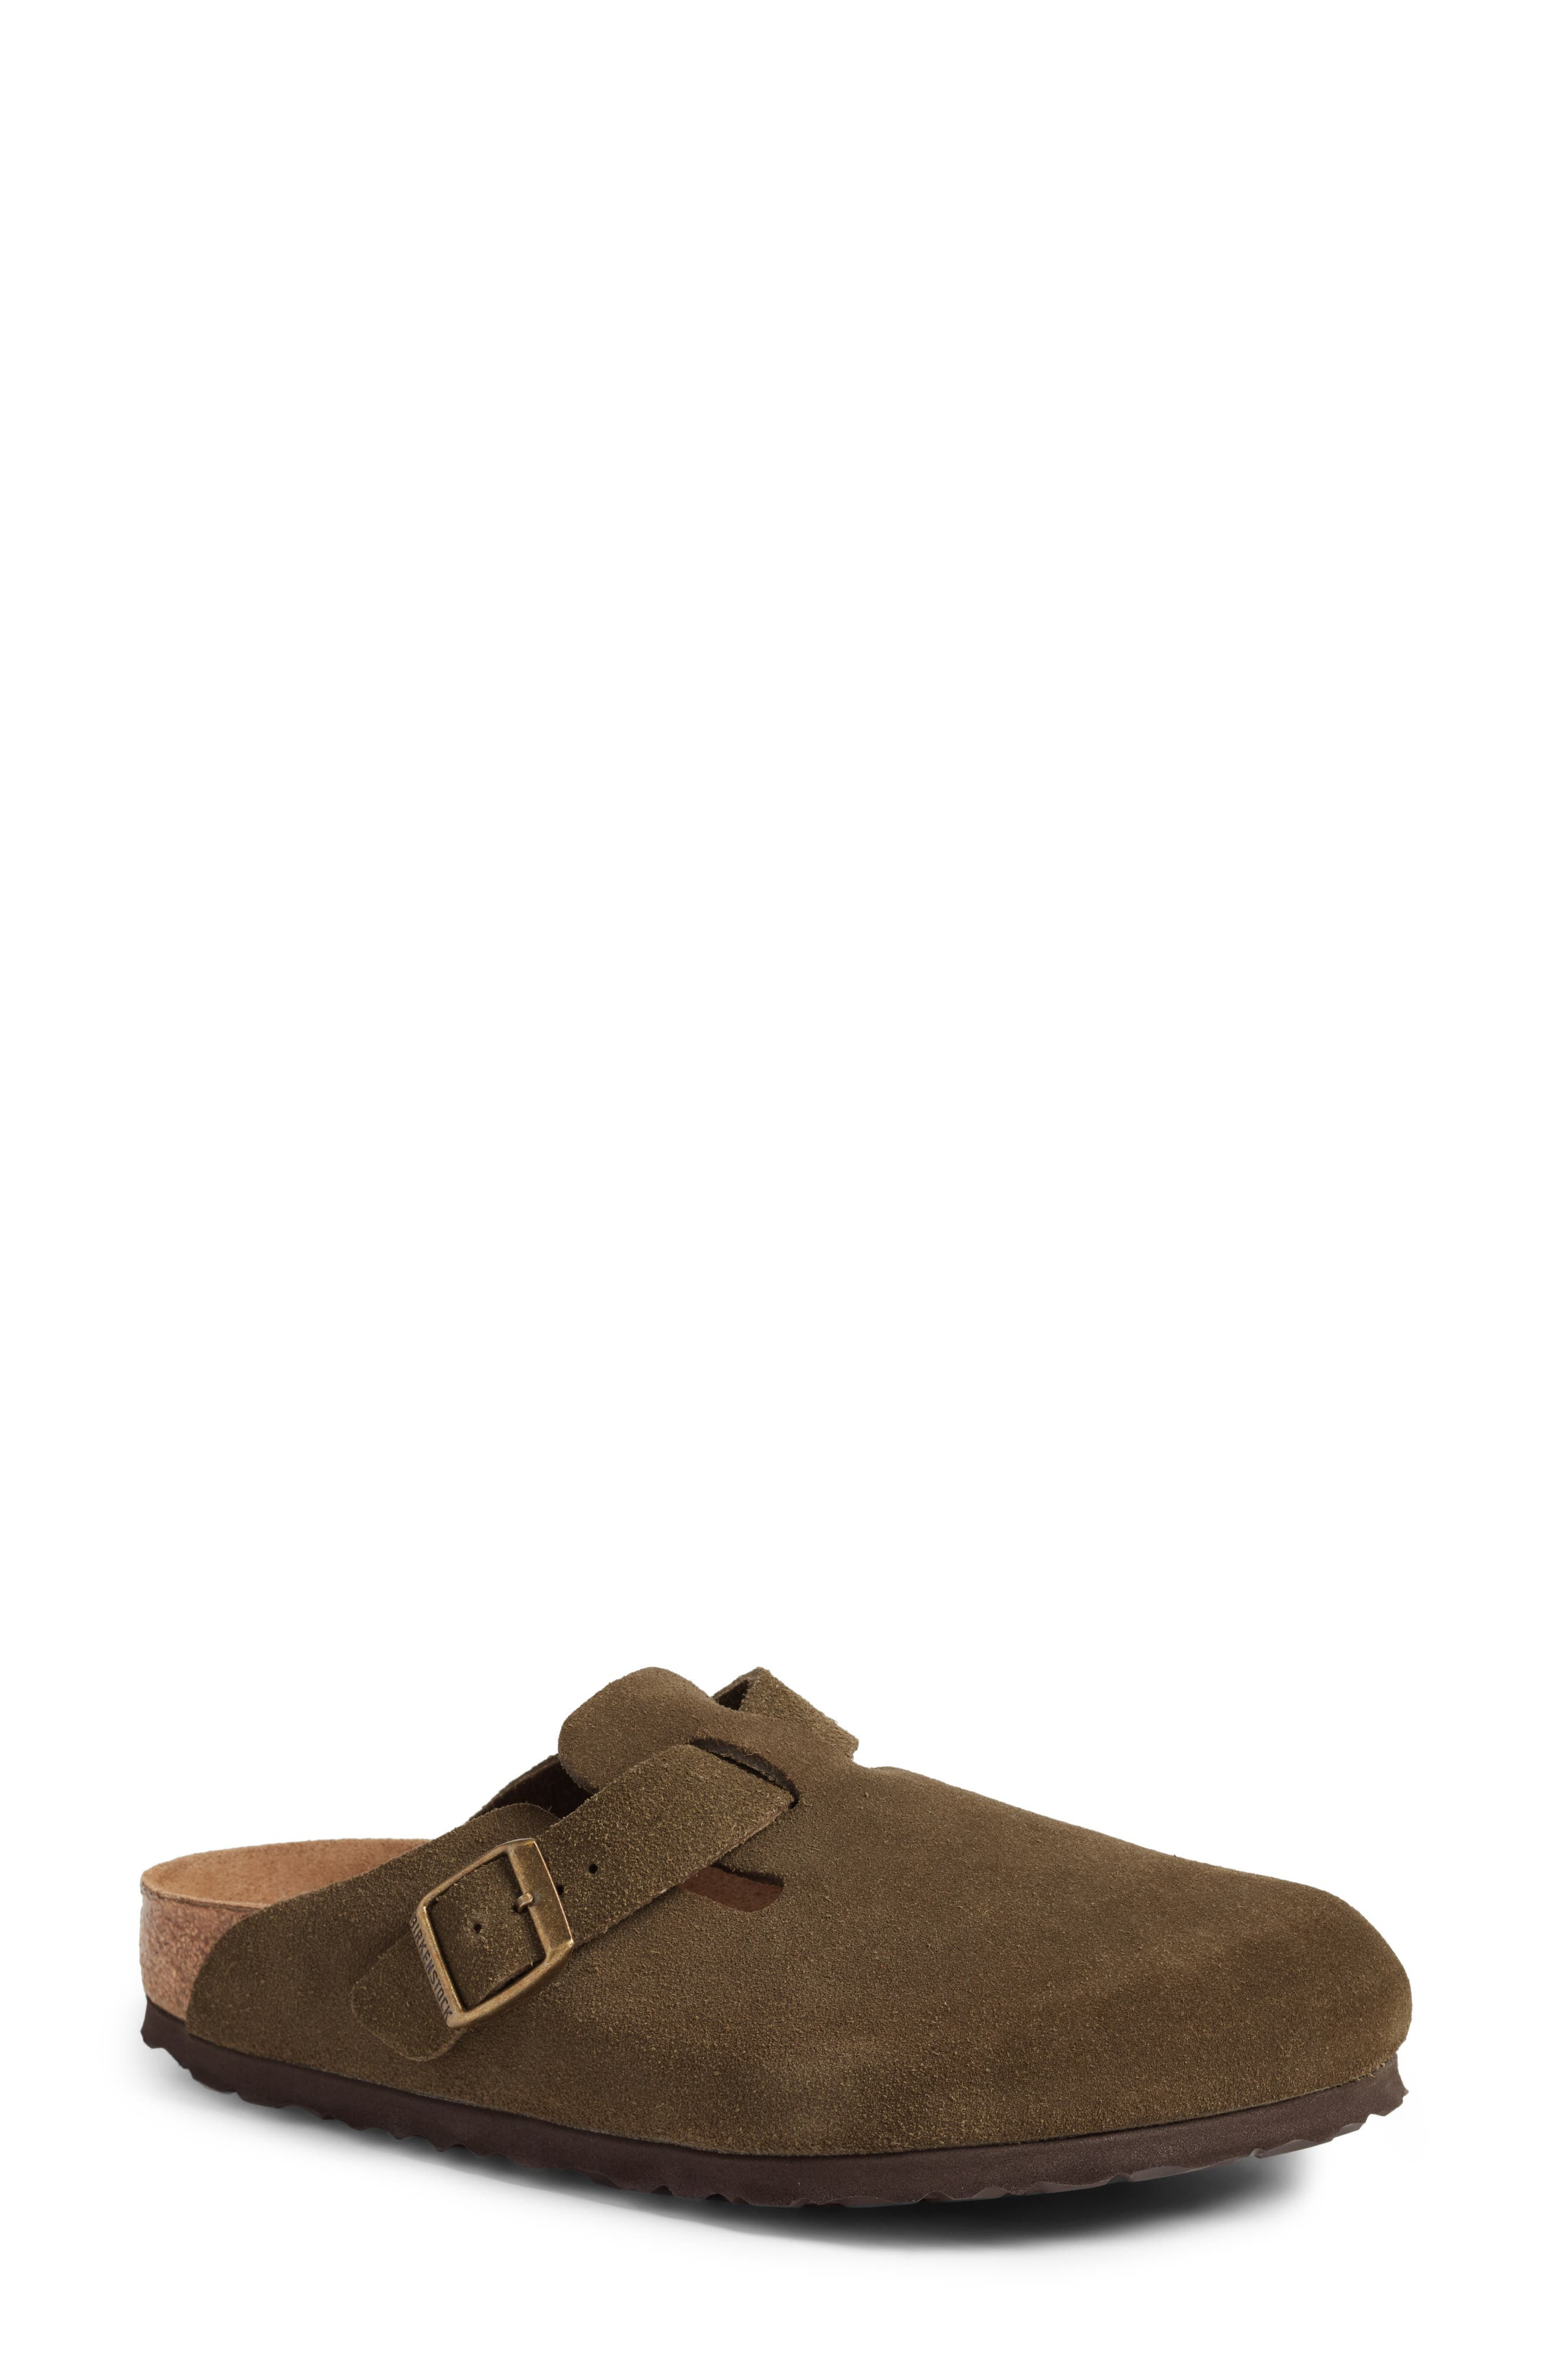 'Boston' Soft Footbed Clog,                             Main thumbnail 1, color,                             Forest Suede